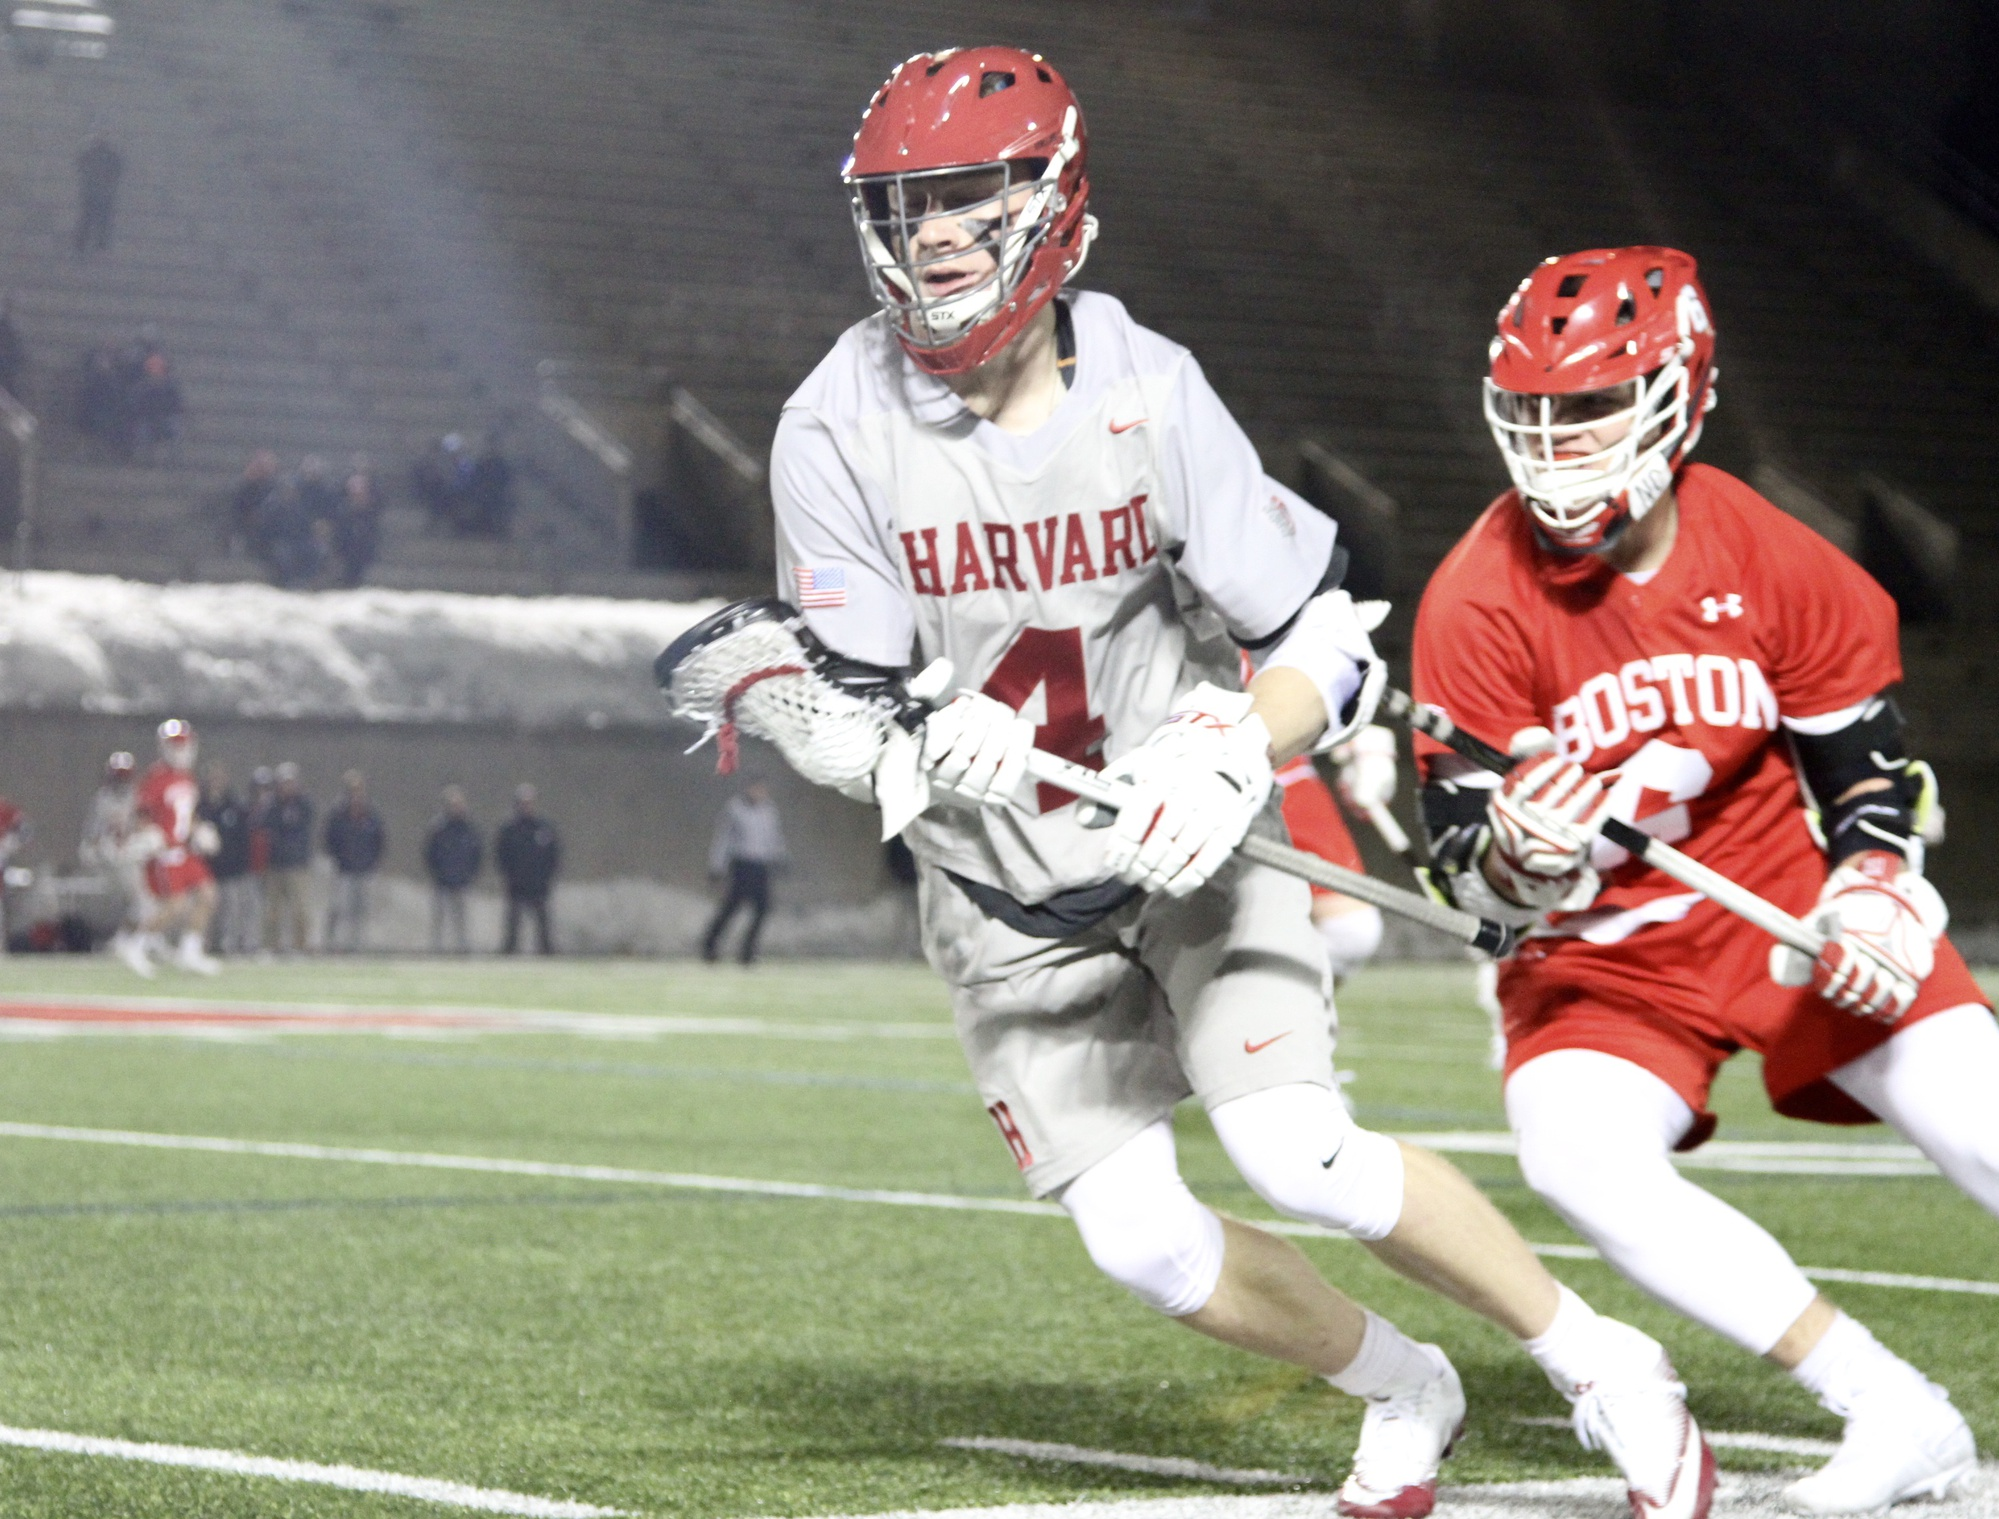 Freshman Charlie Olmert cradles the ball and turns upfield in a recent contest against Boston University.